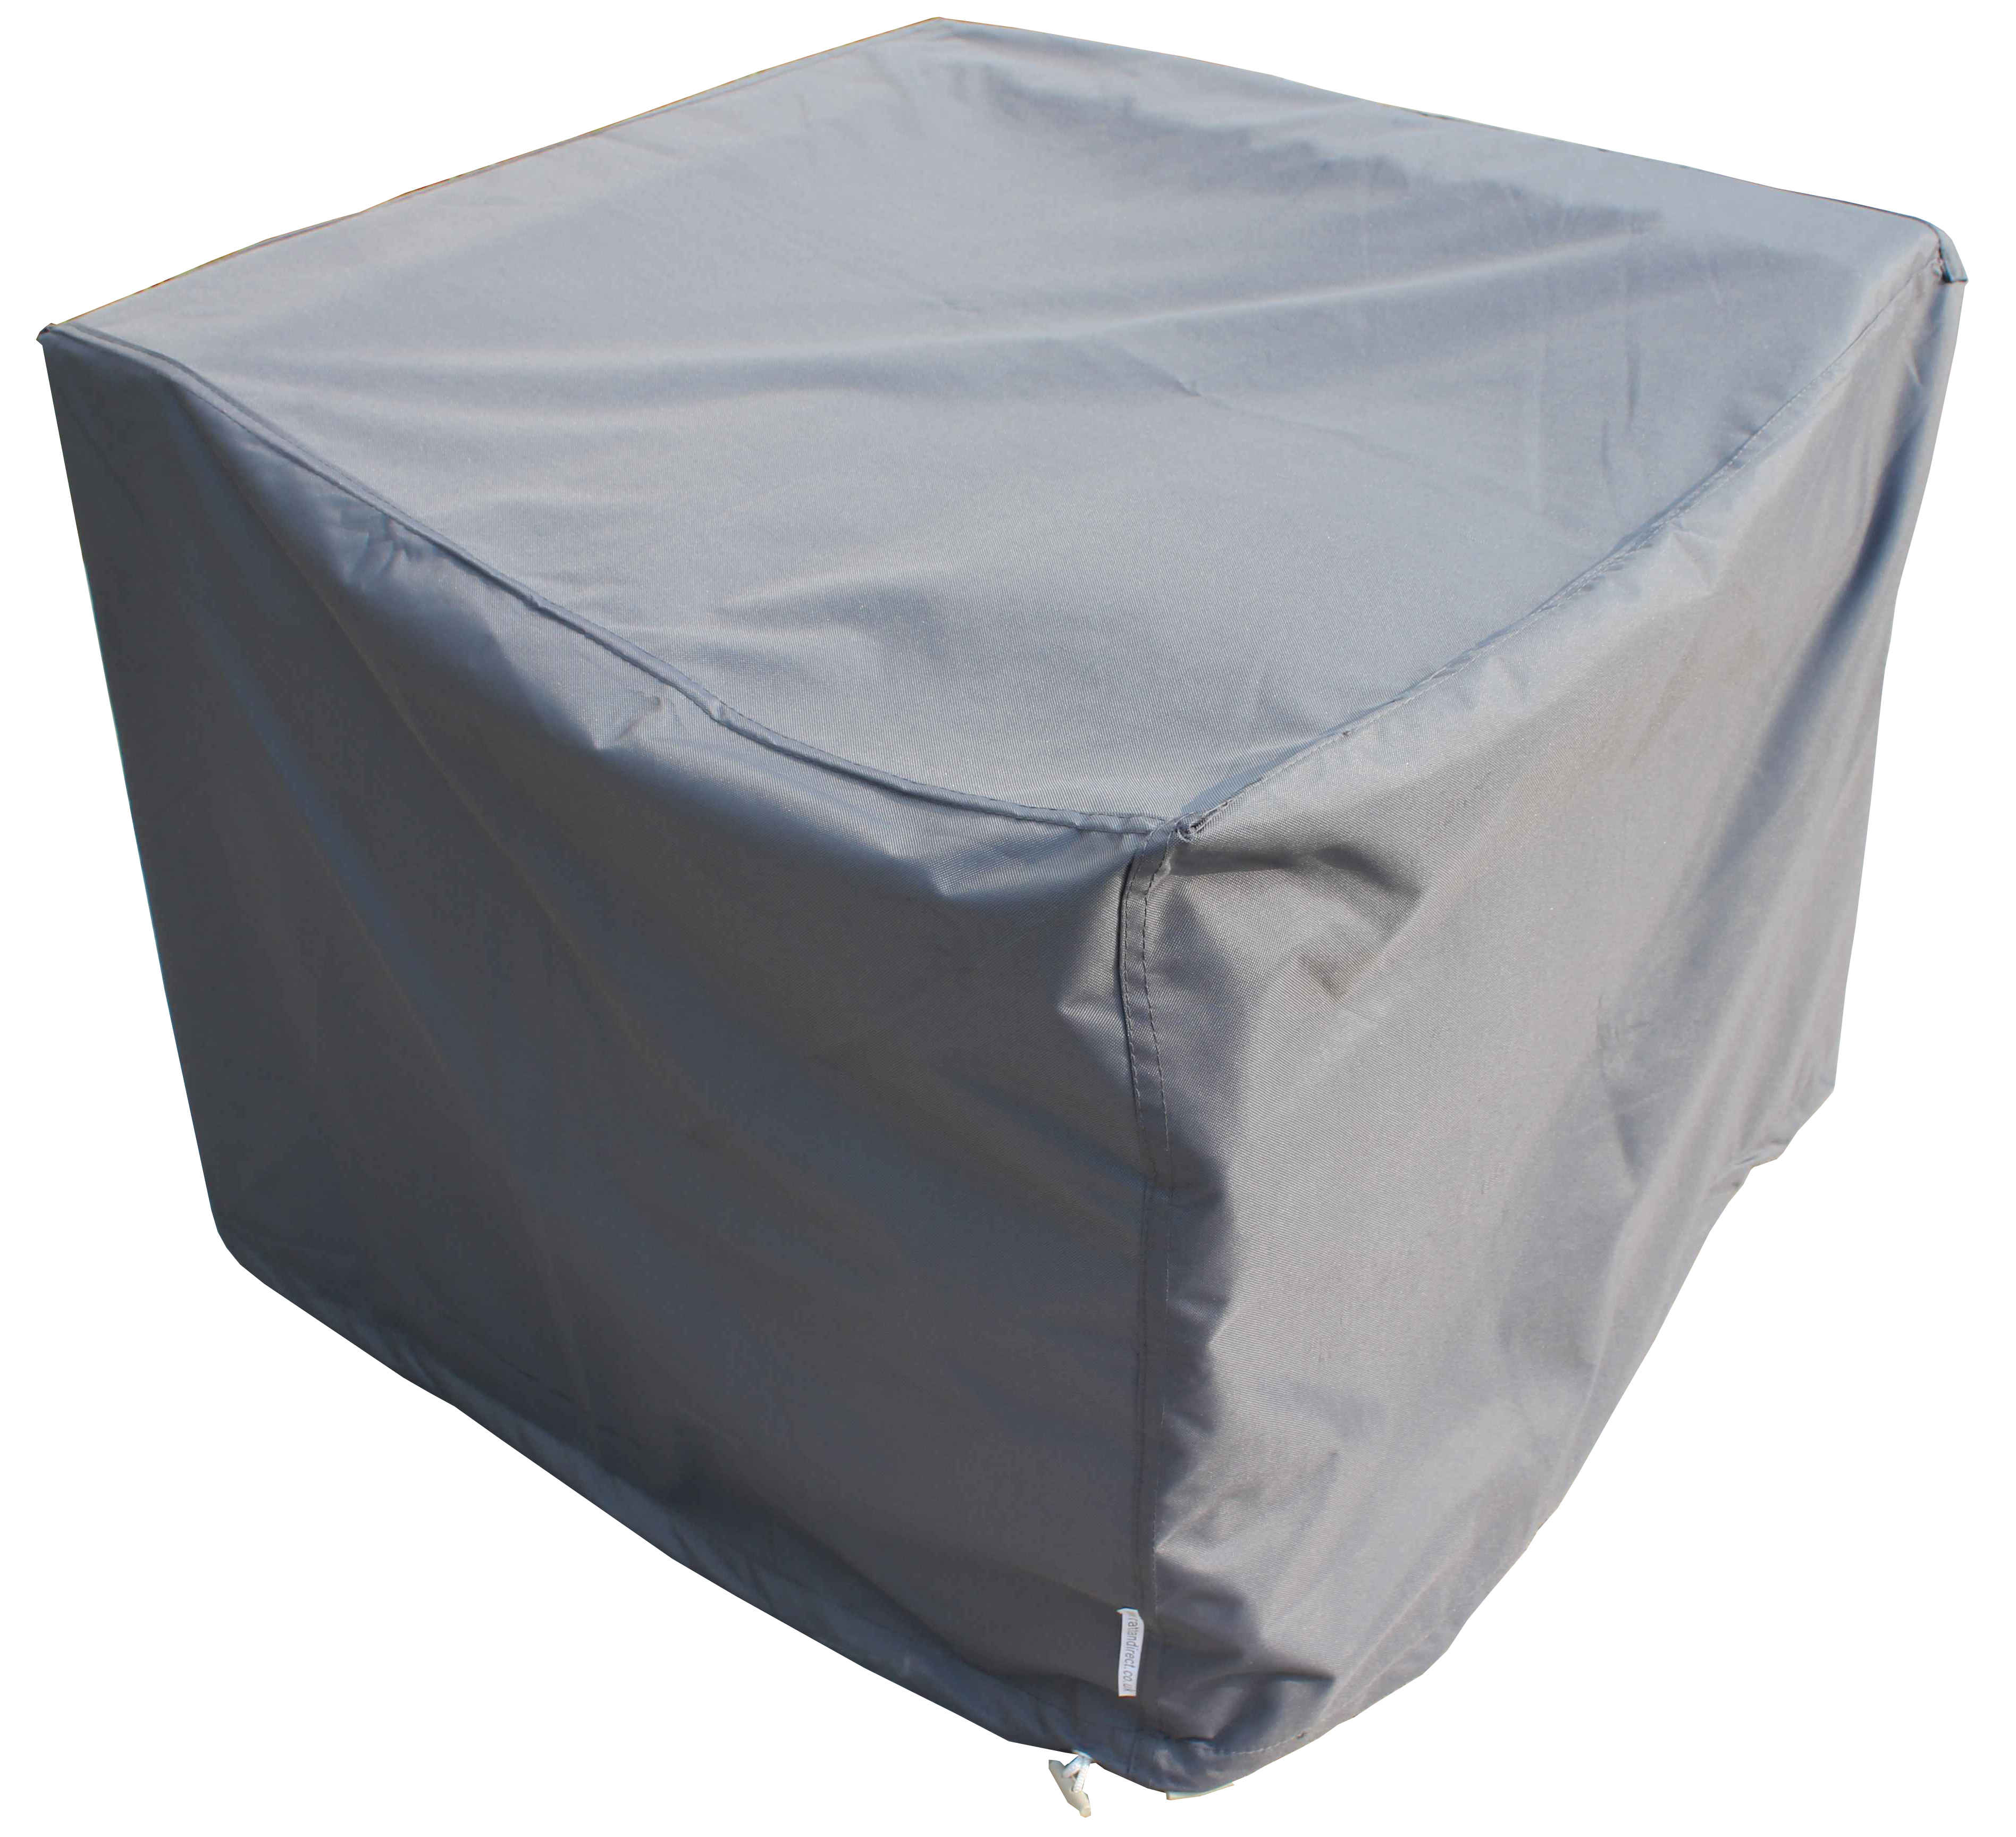 Collection Garden Furniture Covers. Collection Garden Furniture Covers C